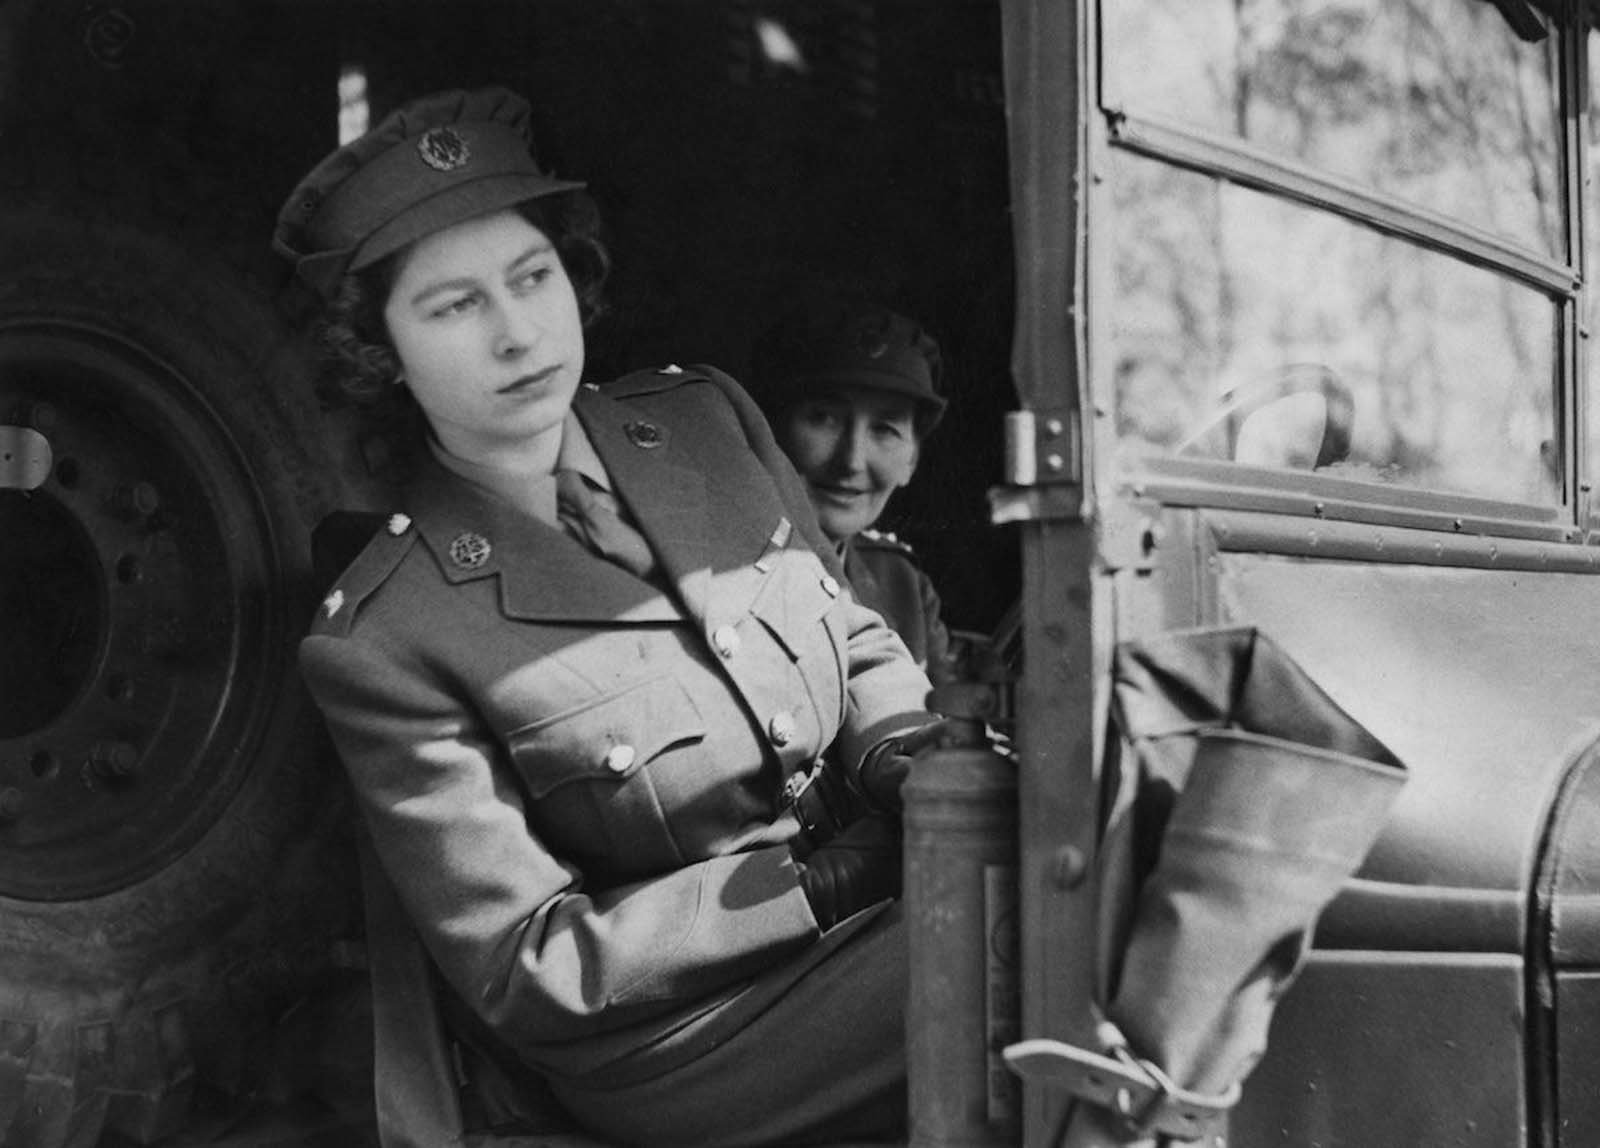 Queen Elizabeth II in 1945.